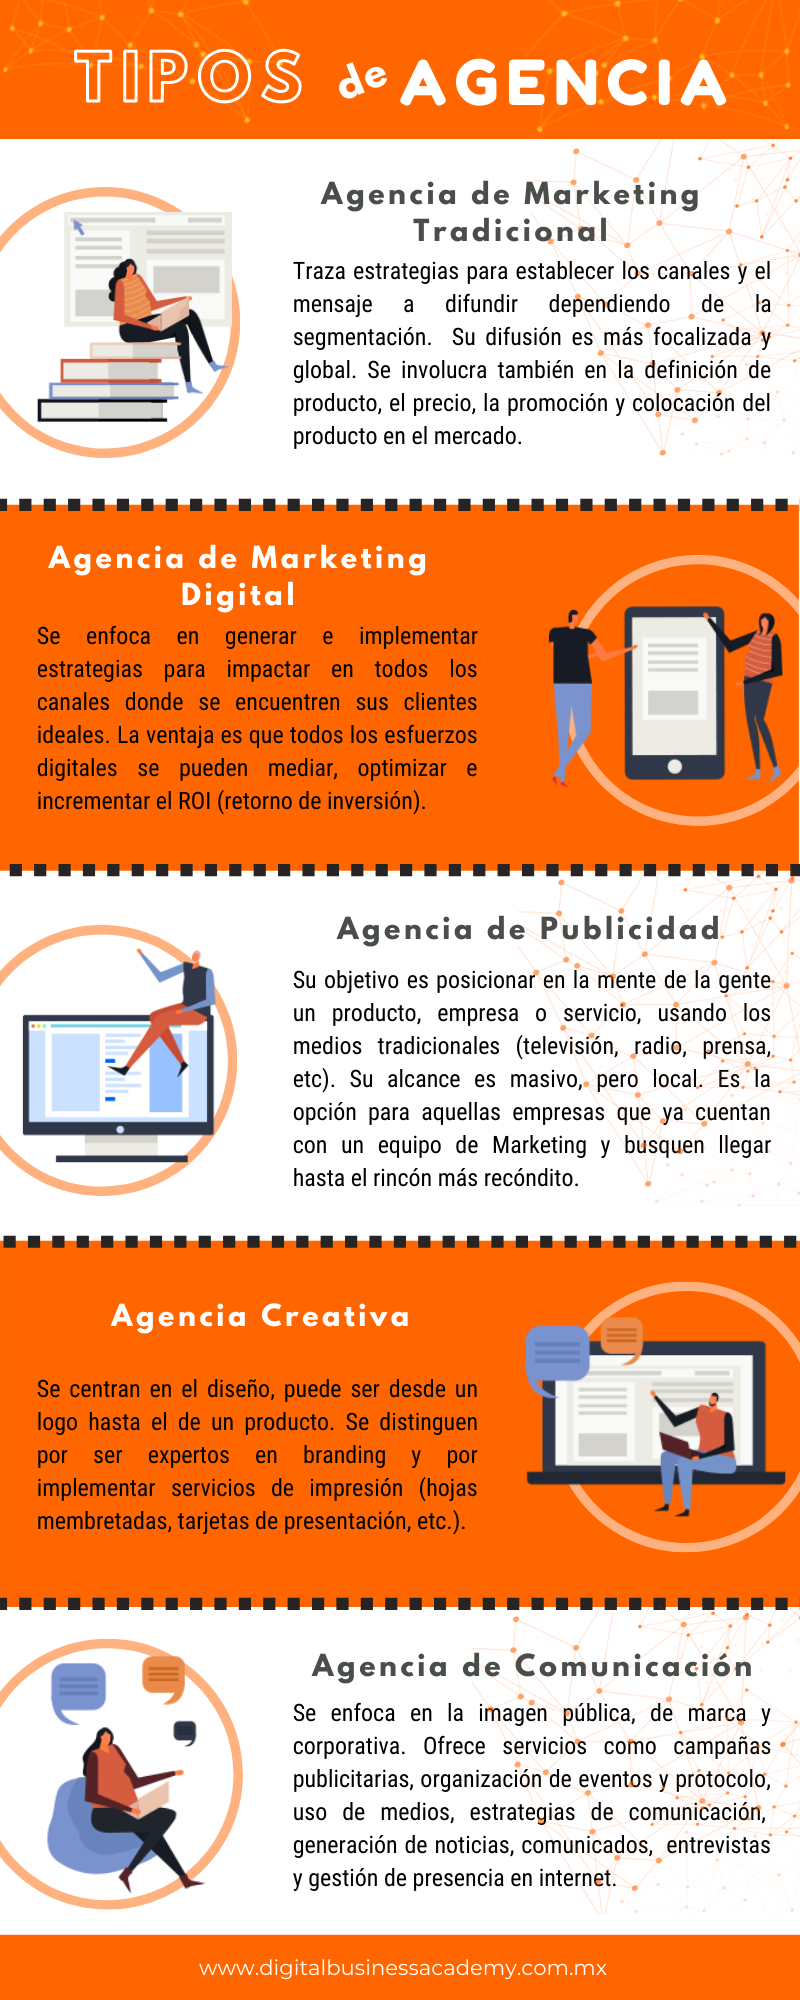 agencia-de-marketing-tipos-de-agencia